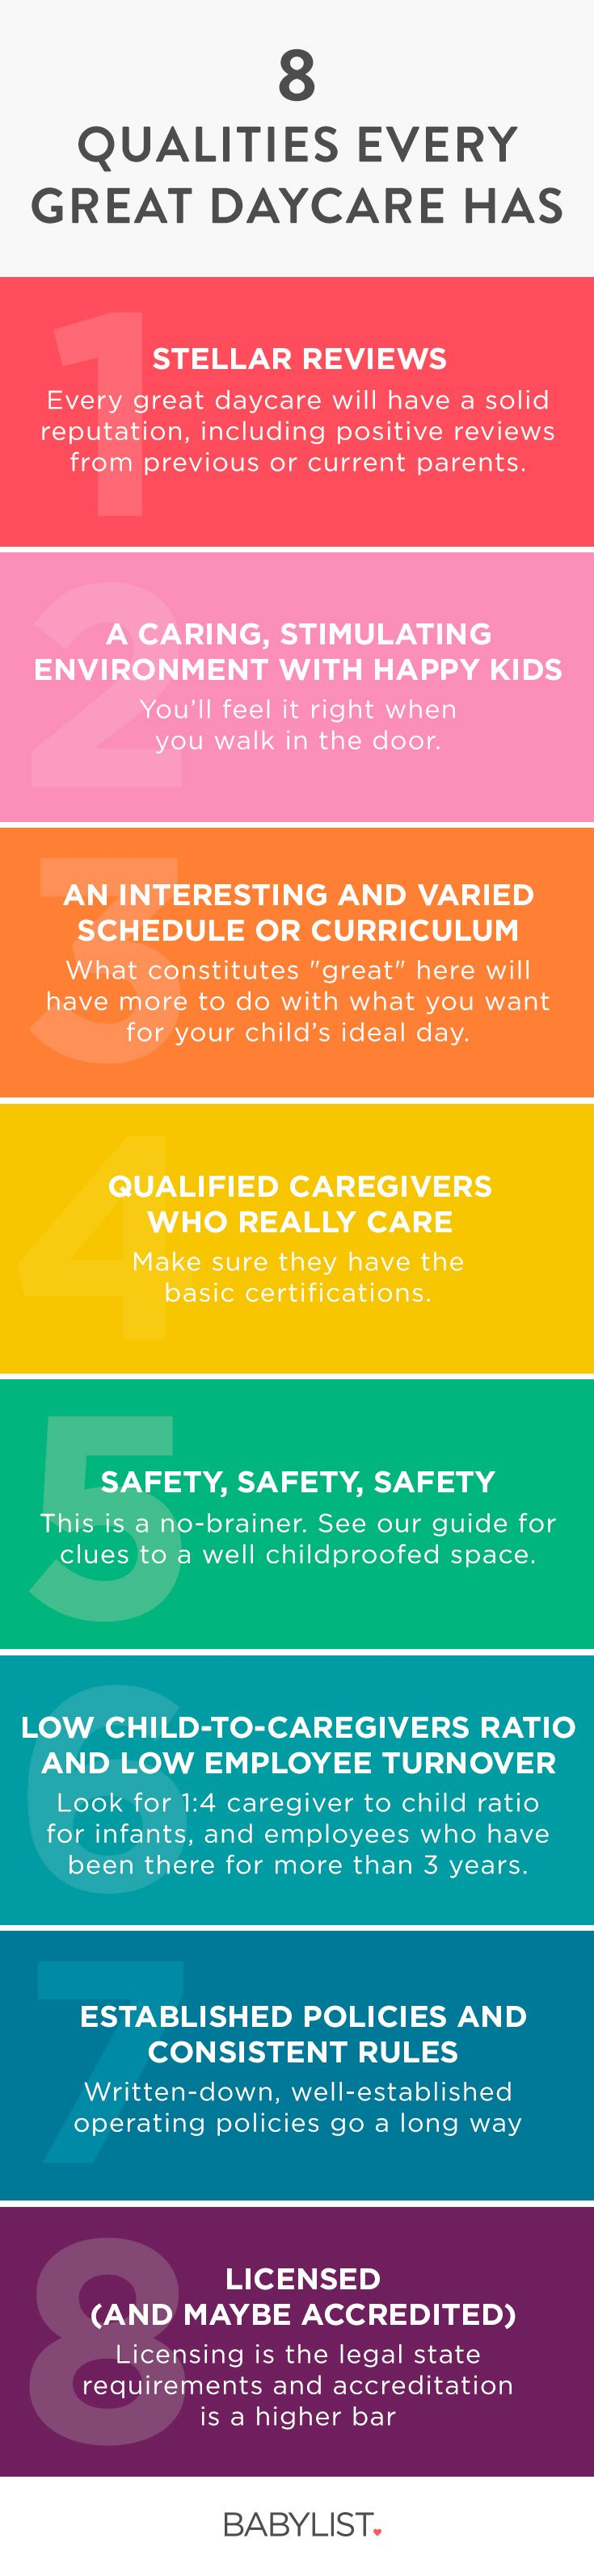 8 Important Qualities of a Great Daycare | Baby advice ...